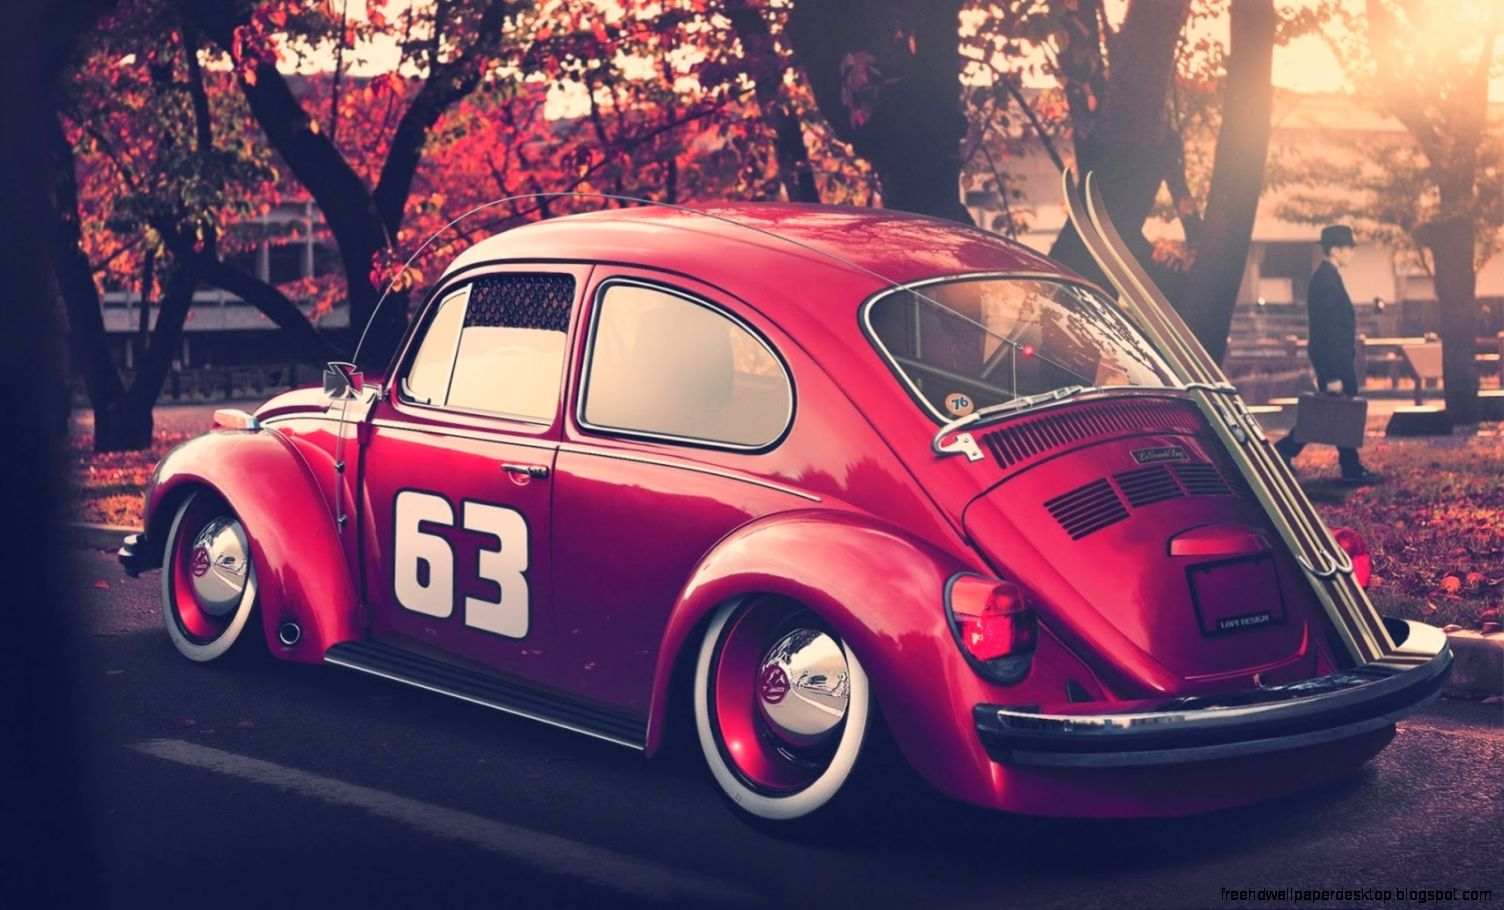 Vw Volkswagen Beetle Bug Hd Wallpaper  Free High Definition Wallpapers